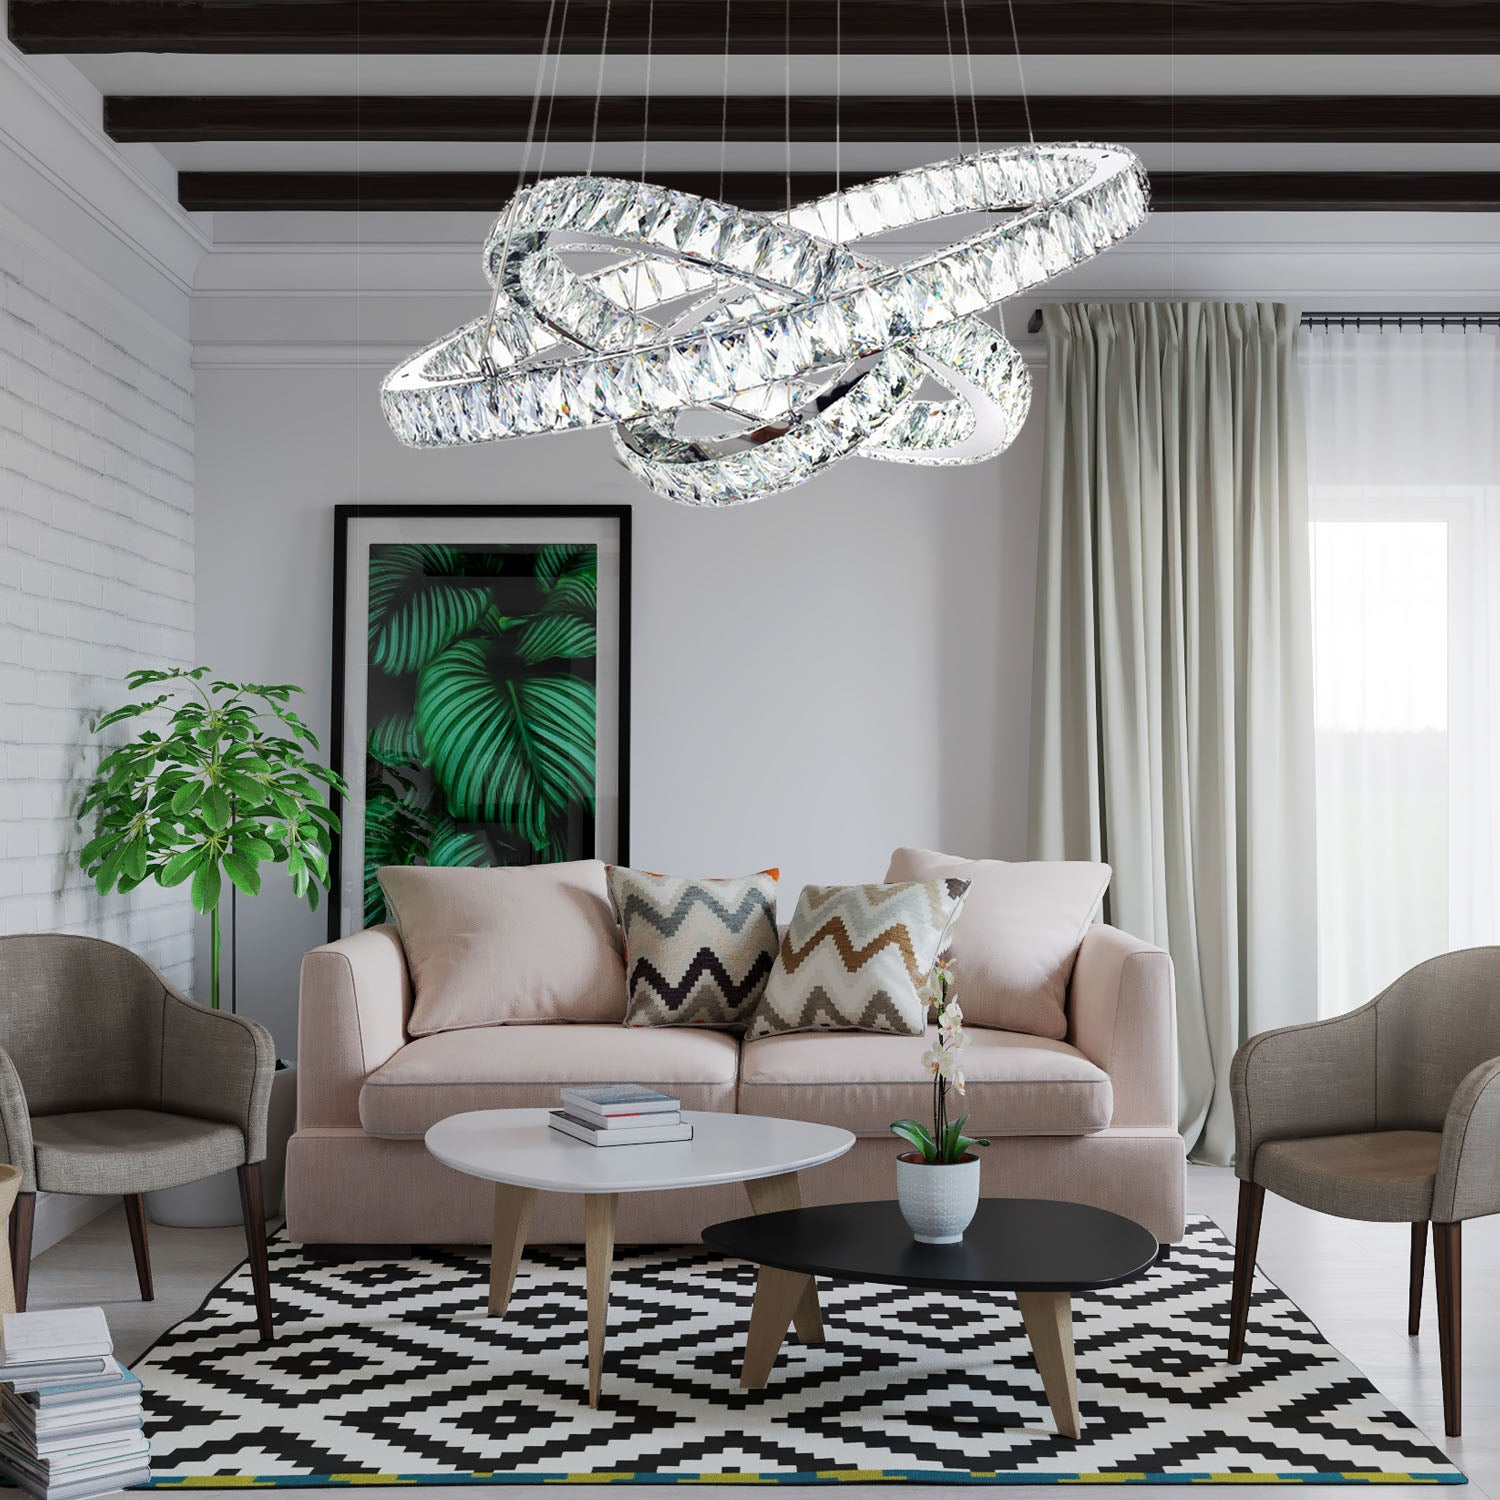 Neptune Three Rings Chandelier - Living Room